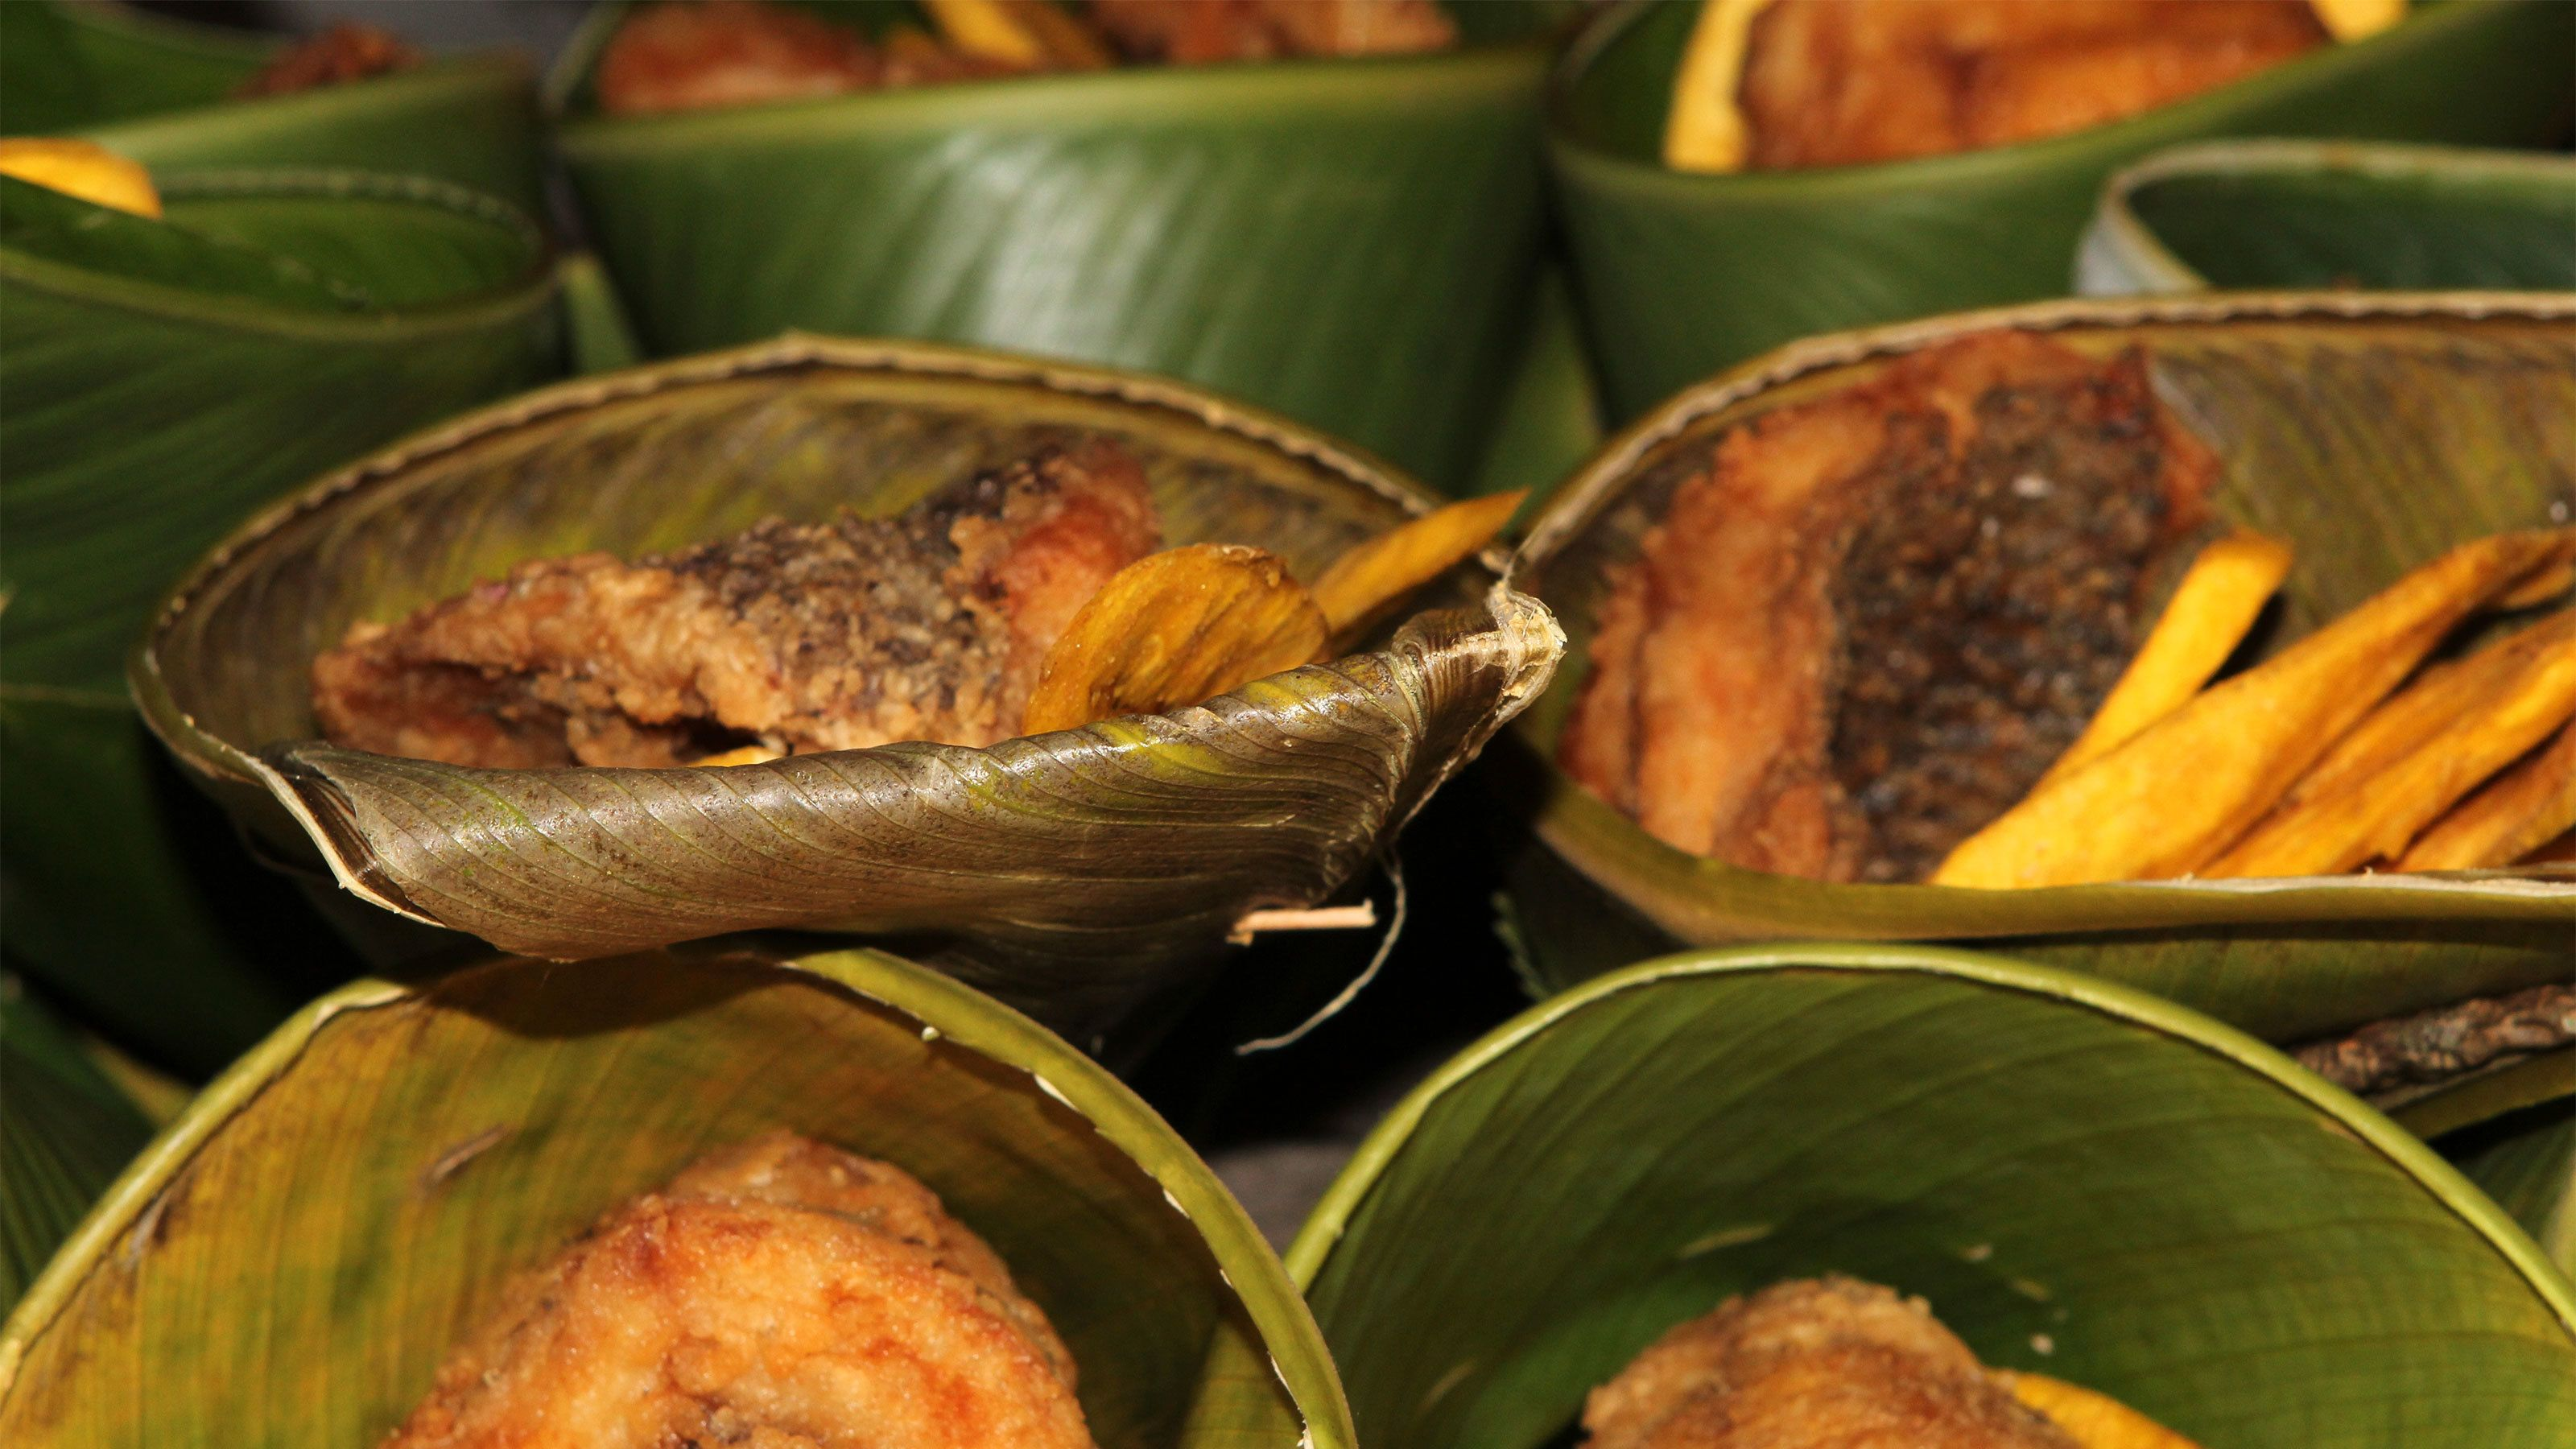 Food prepared in leaves in Panama